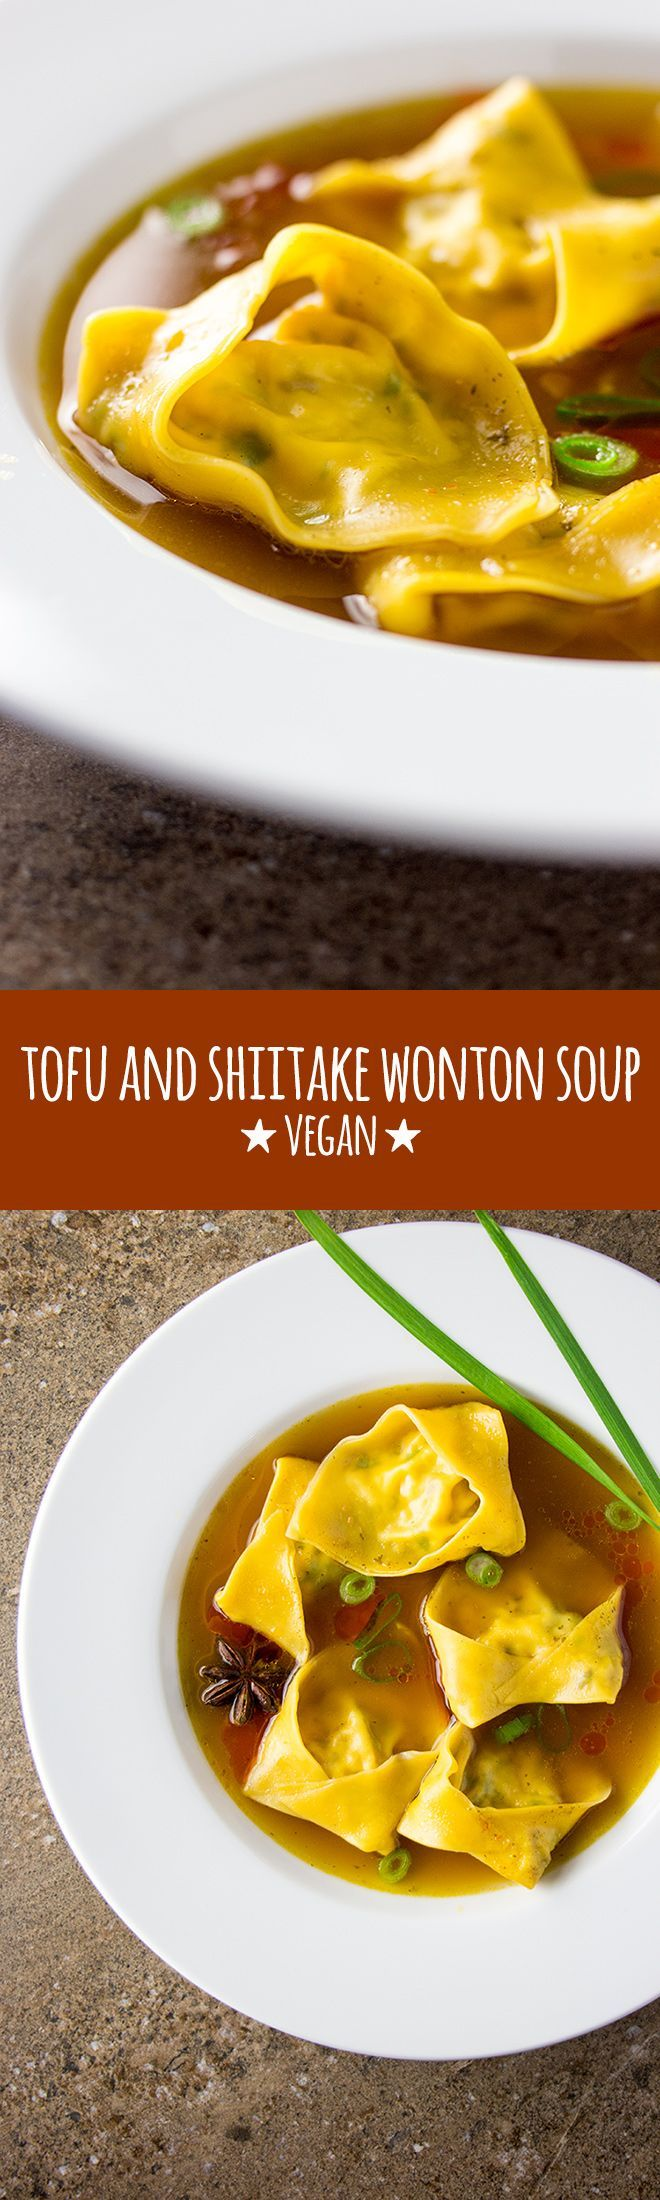 Wonton soup with homemade tofu and shiitake mushroom wontons, swimming in a rich and fragrant broth flavoured with star anise and lemongrass. #vegan #vegetarian #dairyfree #eggfree #wonton #wontons #soup #broth #chinese #tofu #shiitake #mushrooms #corian